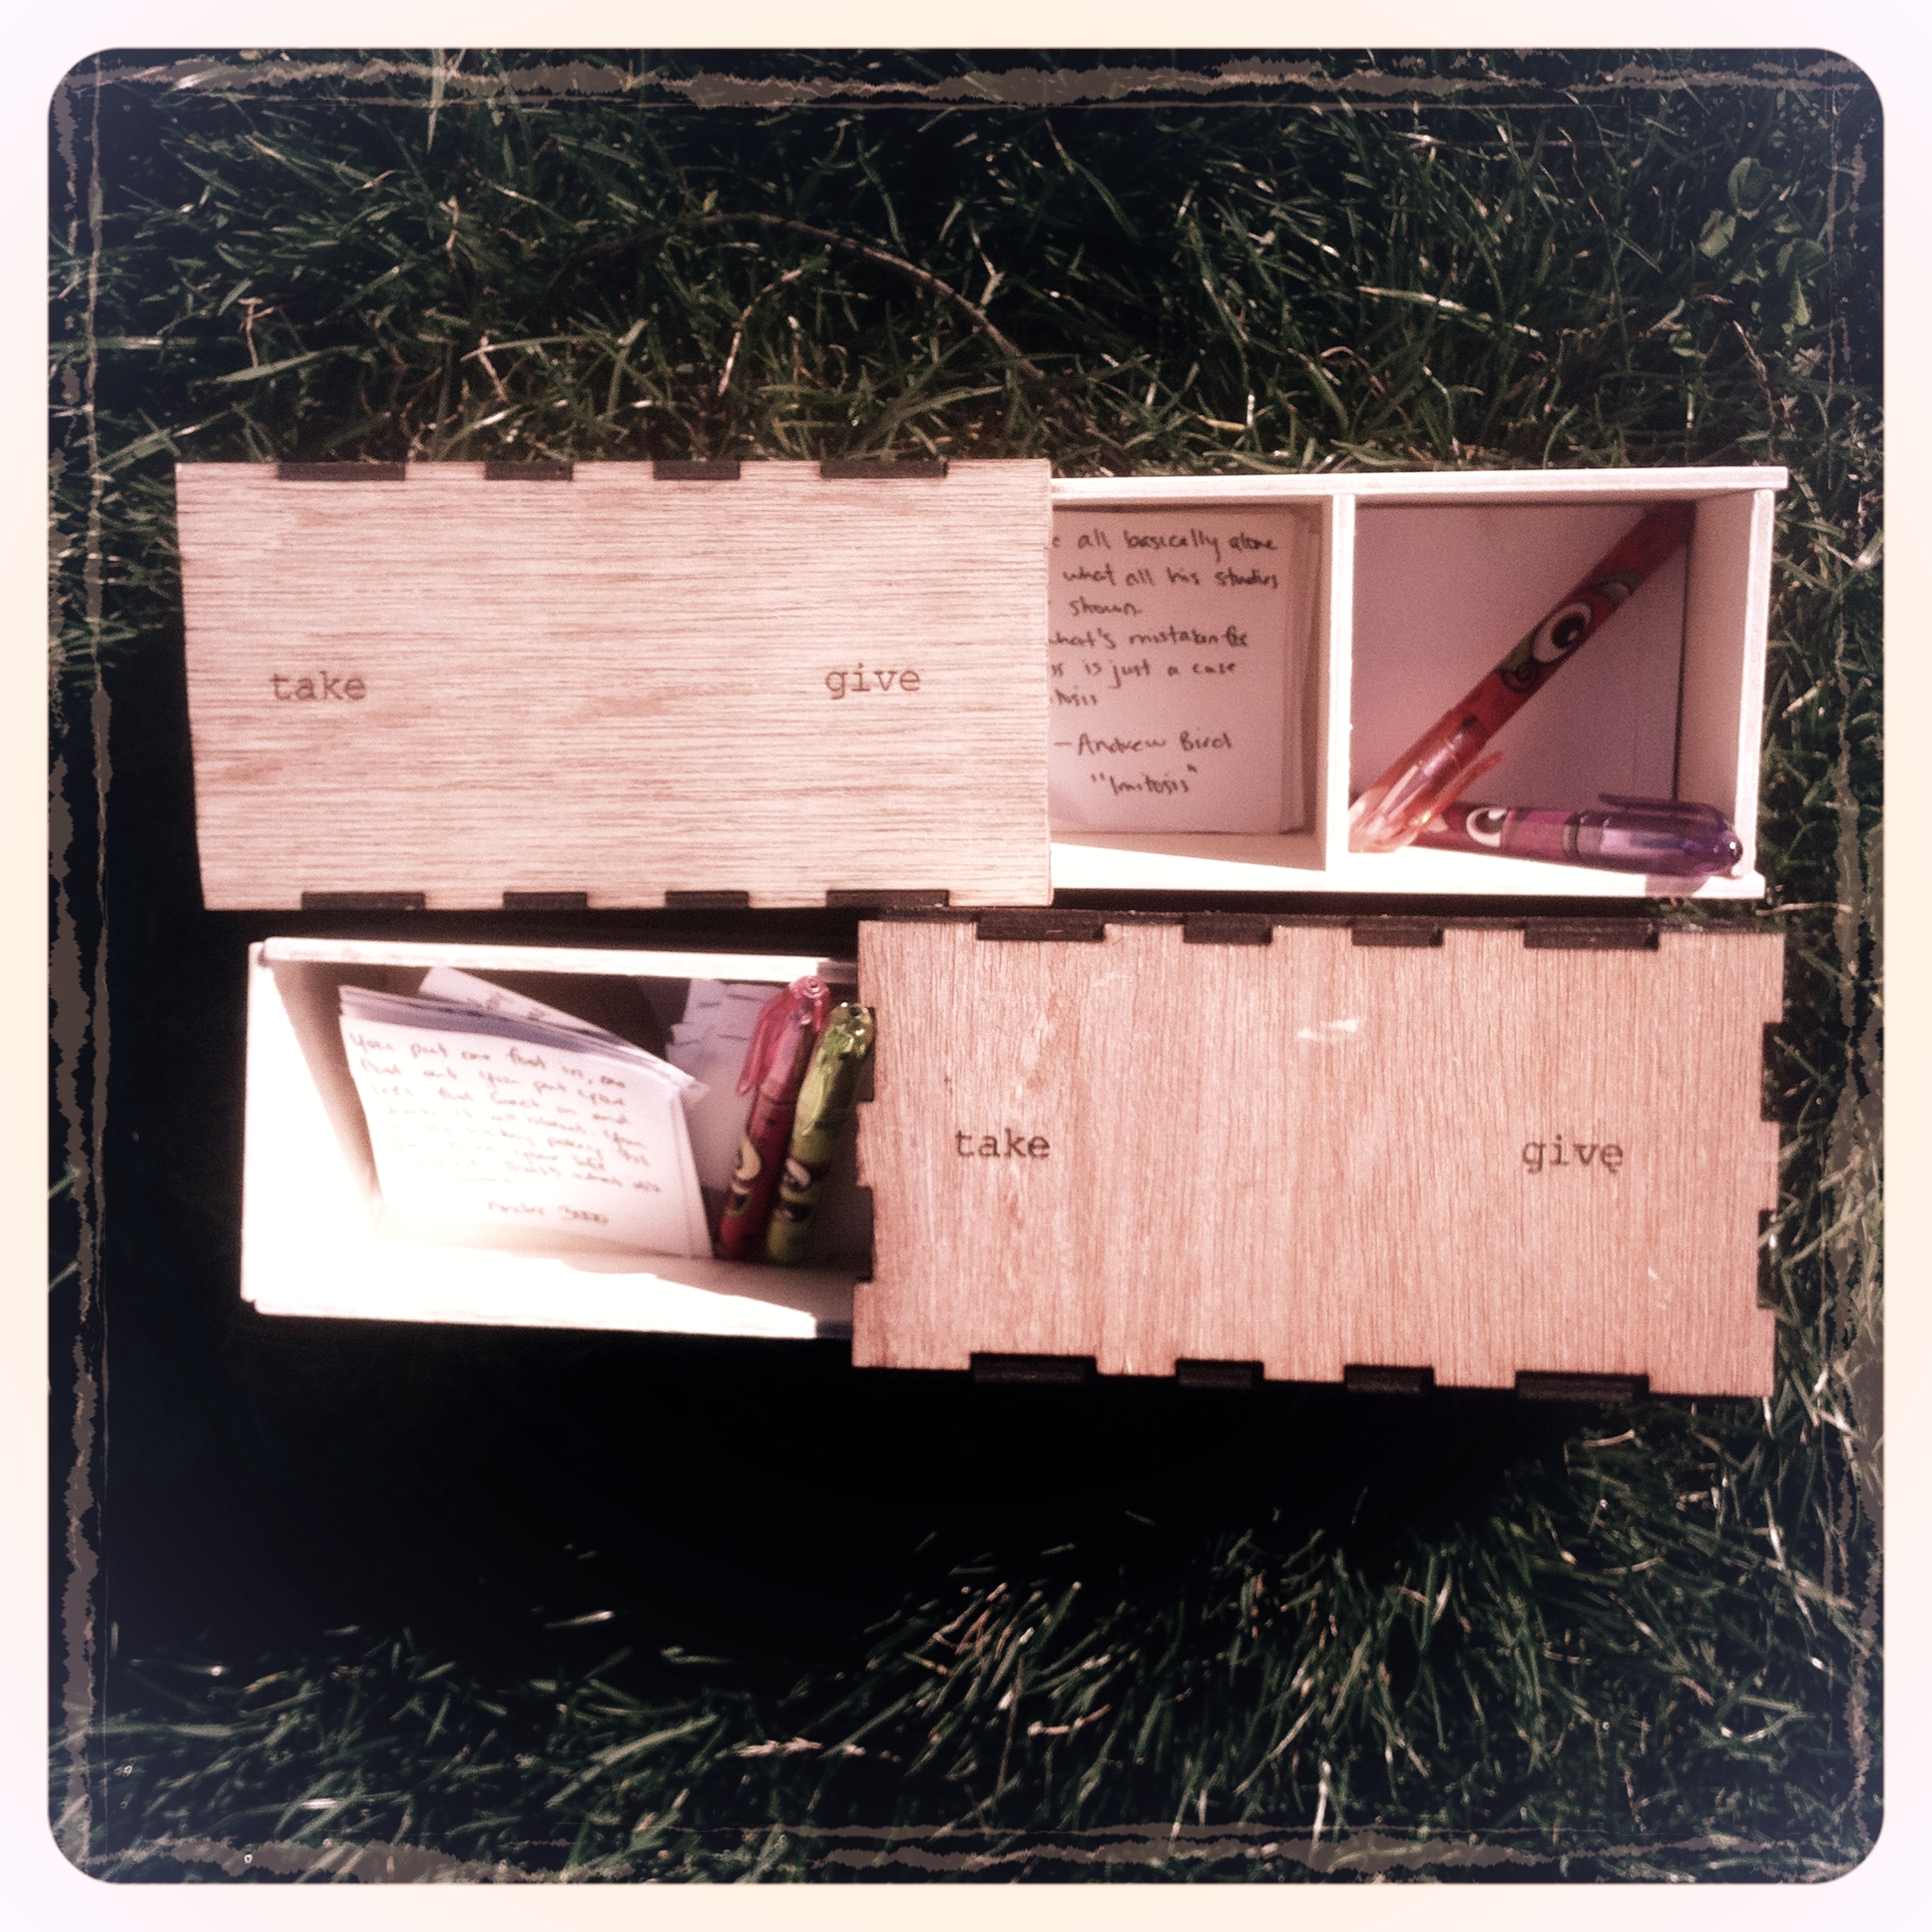 Finalized boxes with quotes, paper, and pens.